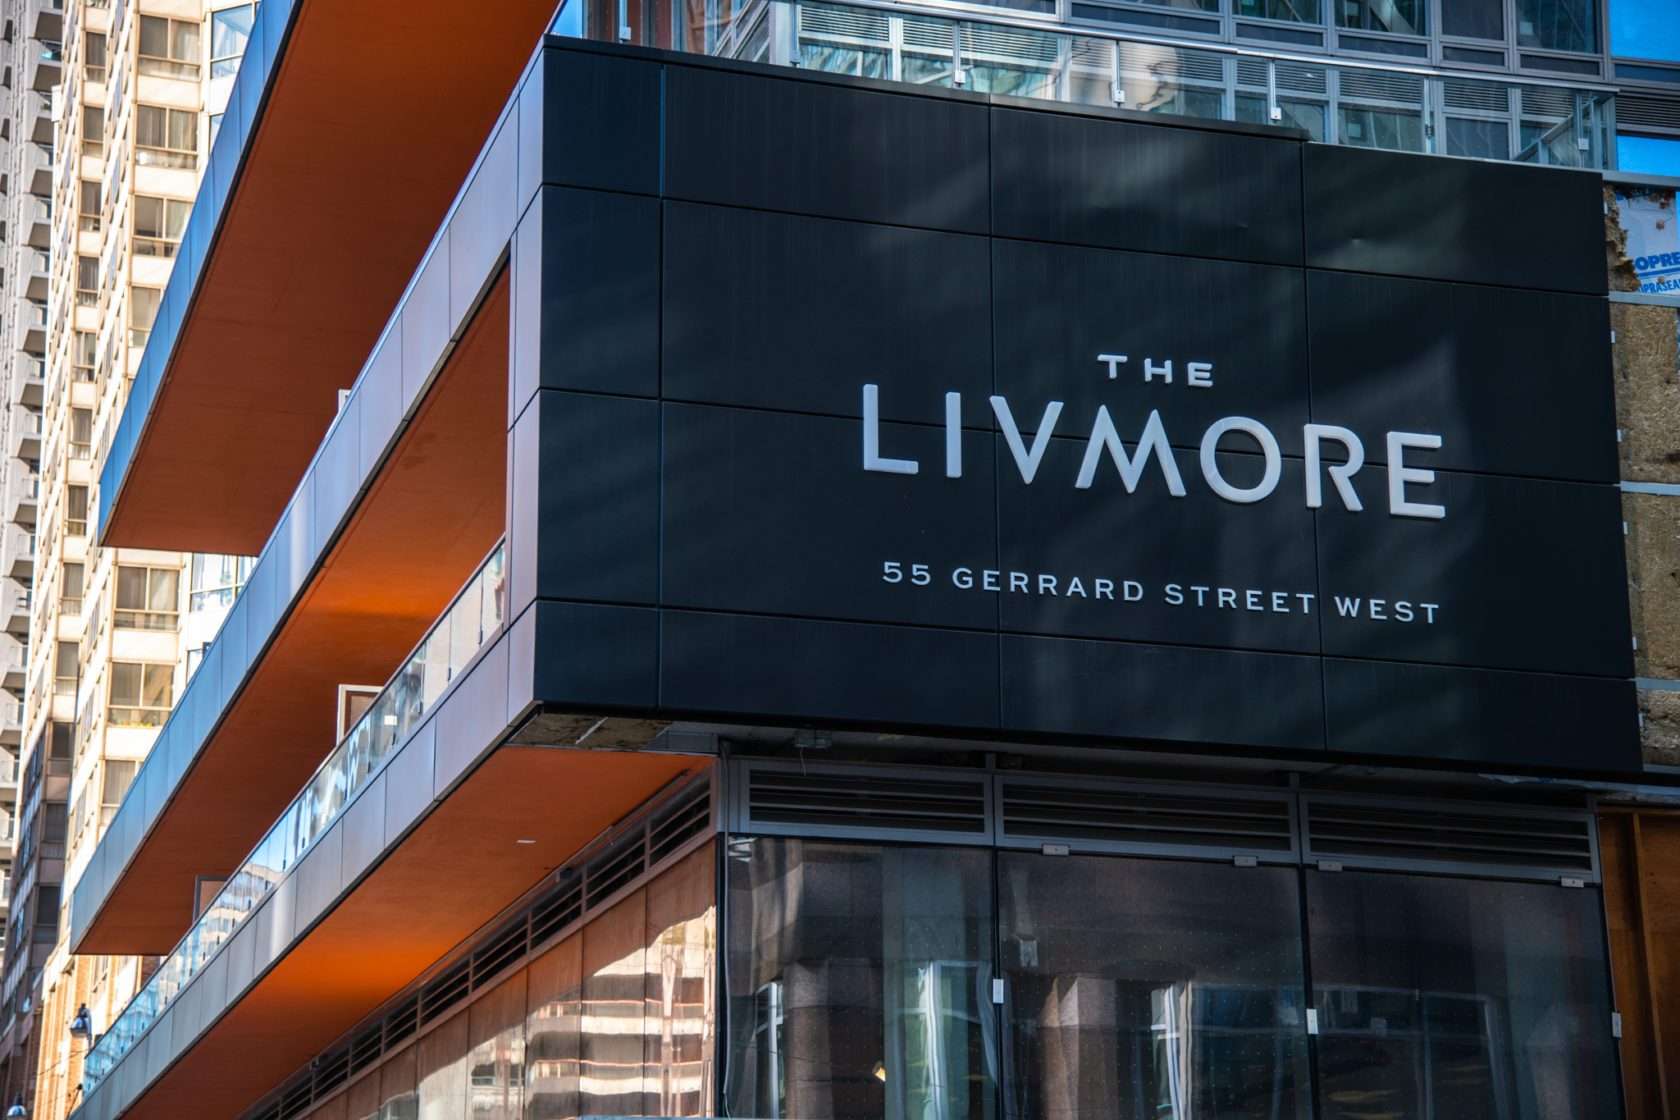 The Livmore building located at 55 Gerrard Street West